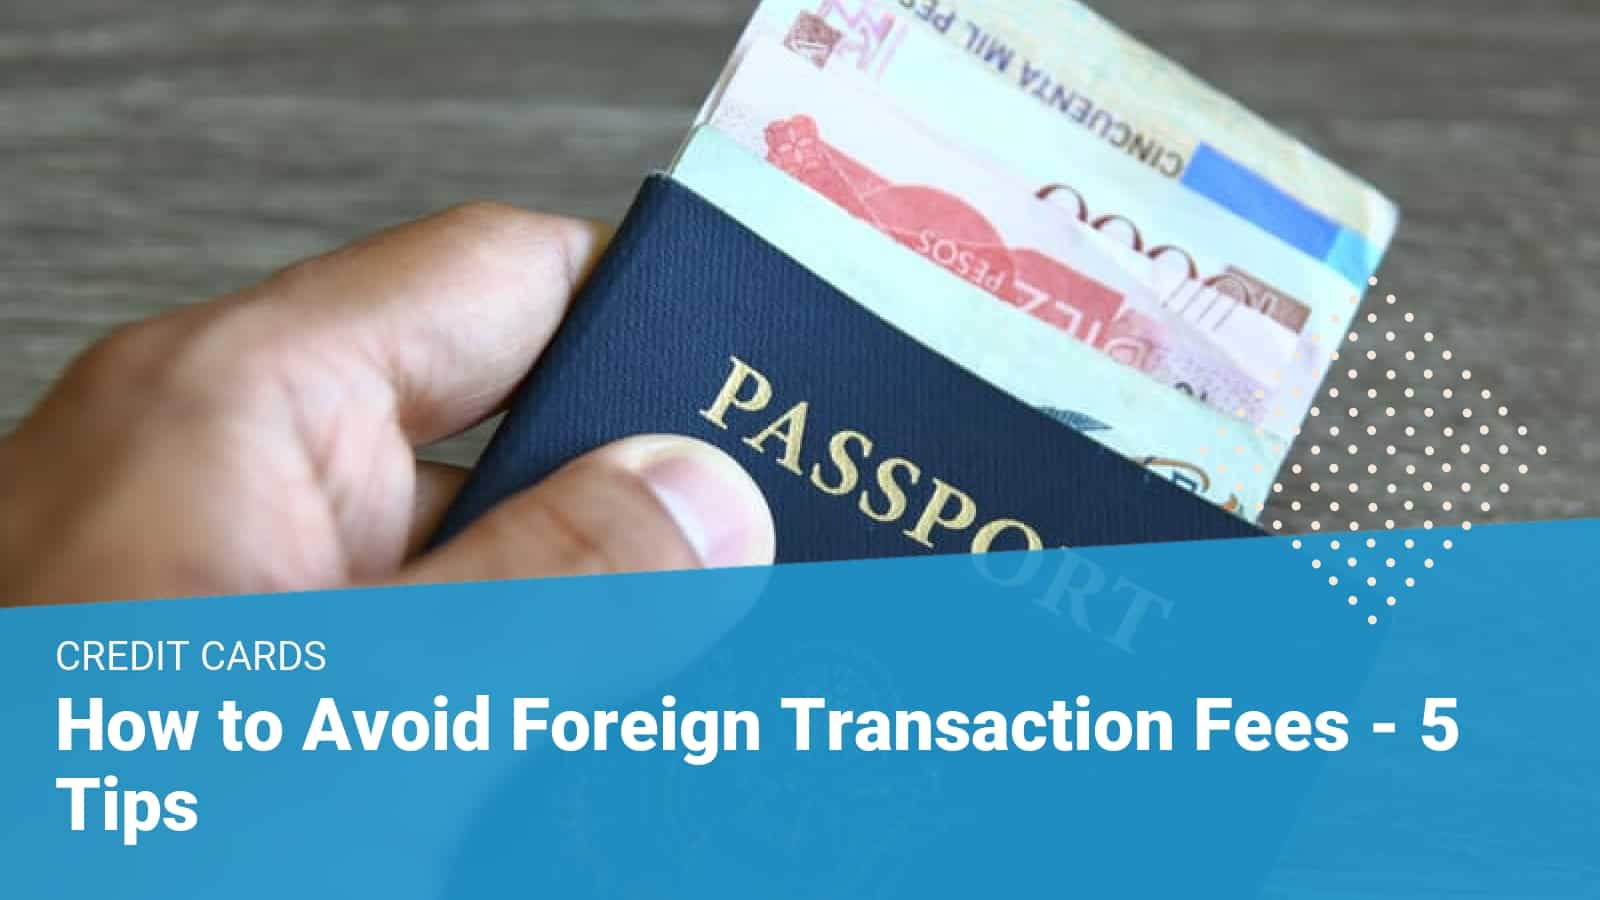 How To Avoid Foreign Transaction Fees